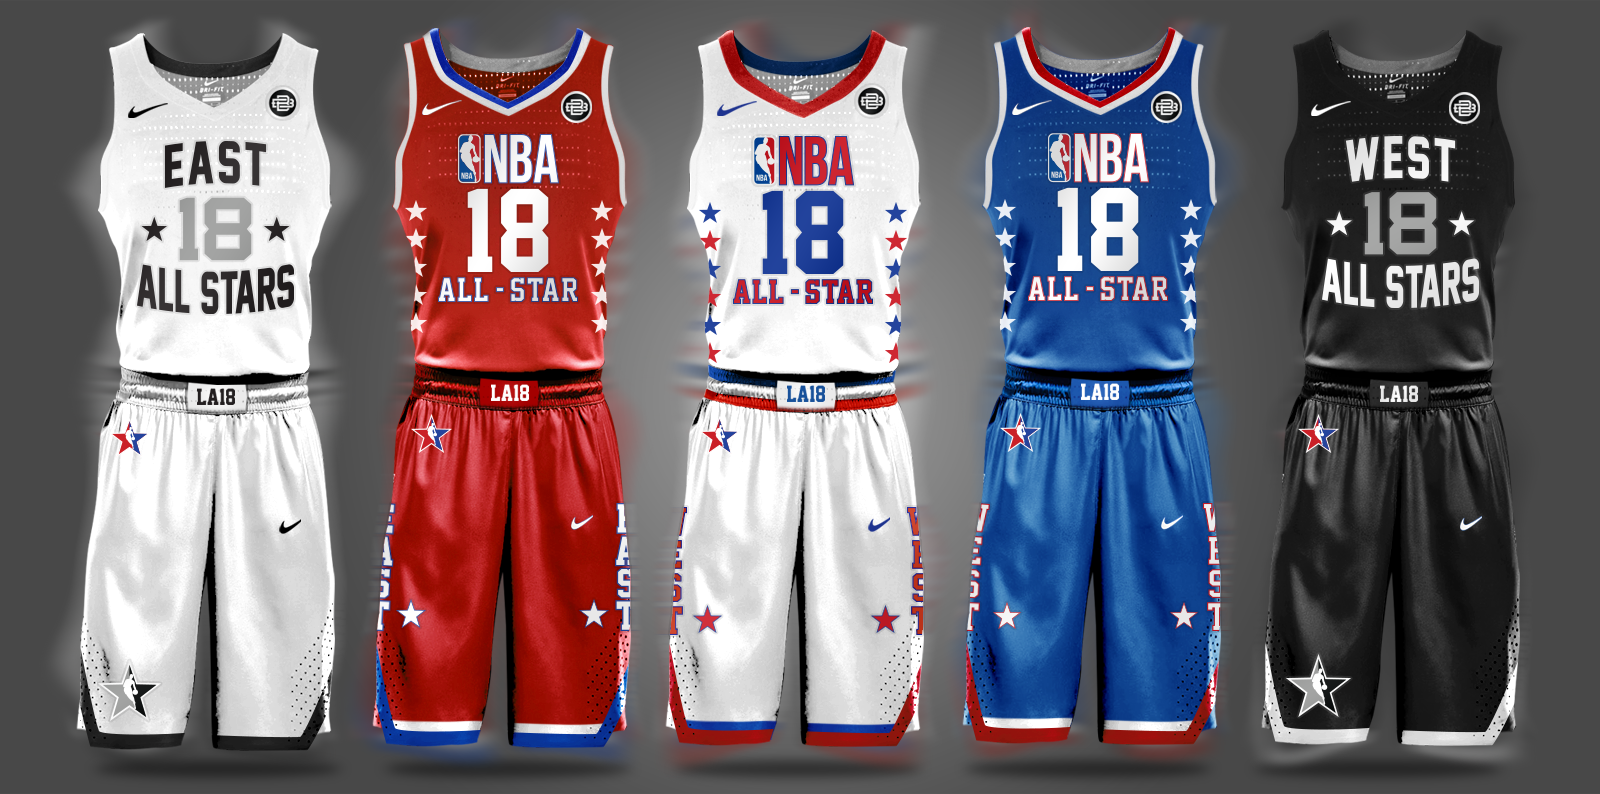 Nba Nike Uniform Concepts I Am Brian Begley